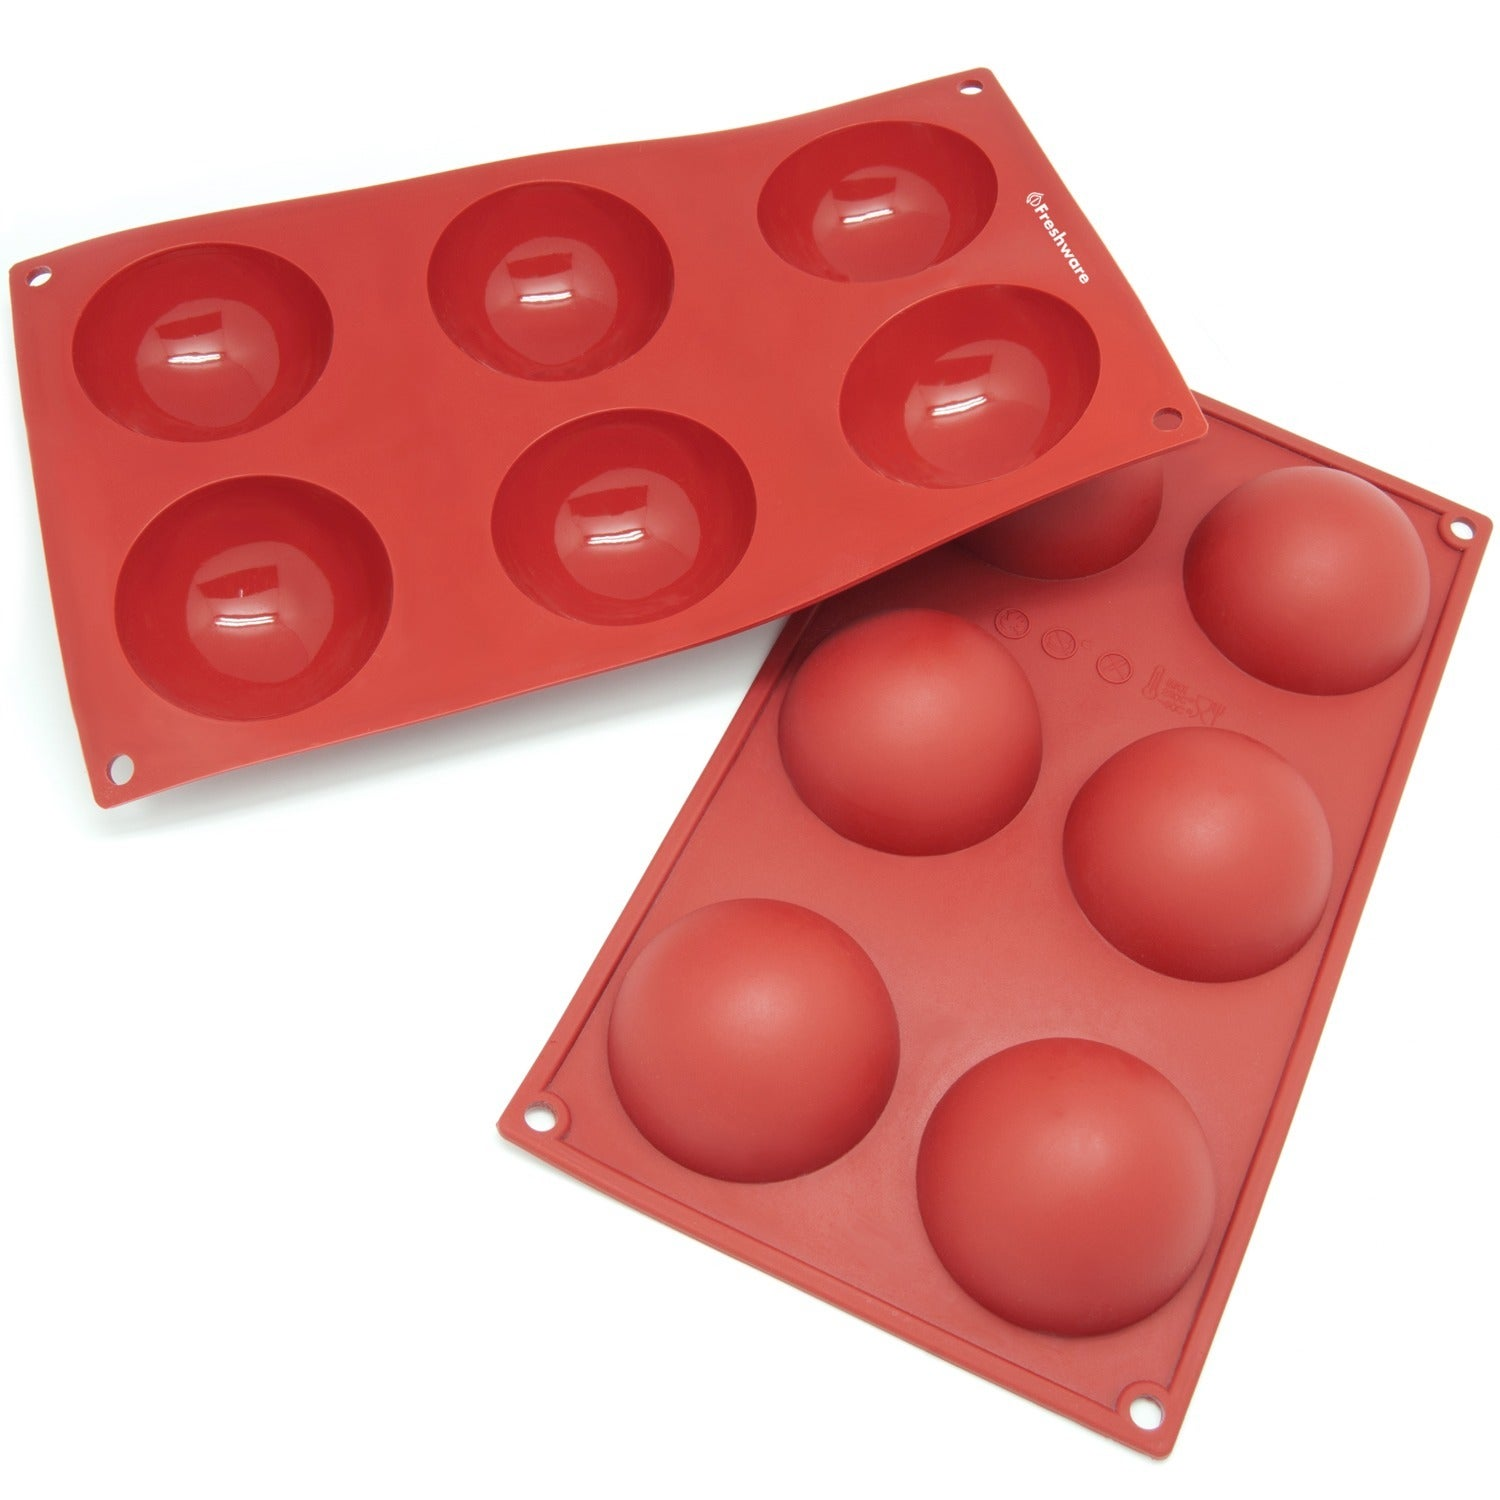 Freshware 6-cavity Half Sphere Silicone Mold/ Baking Pans...